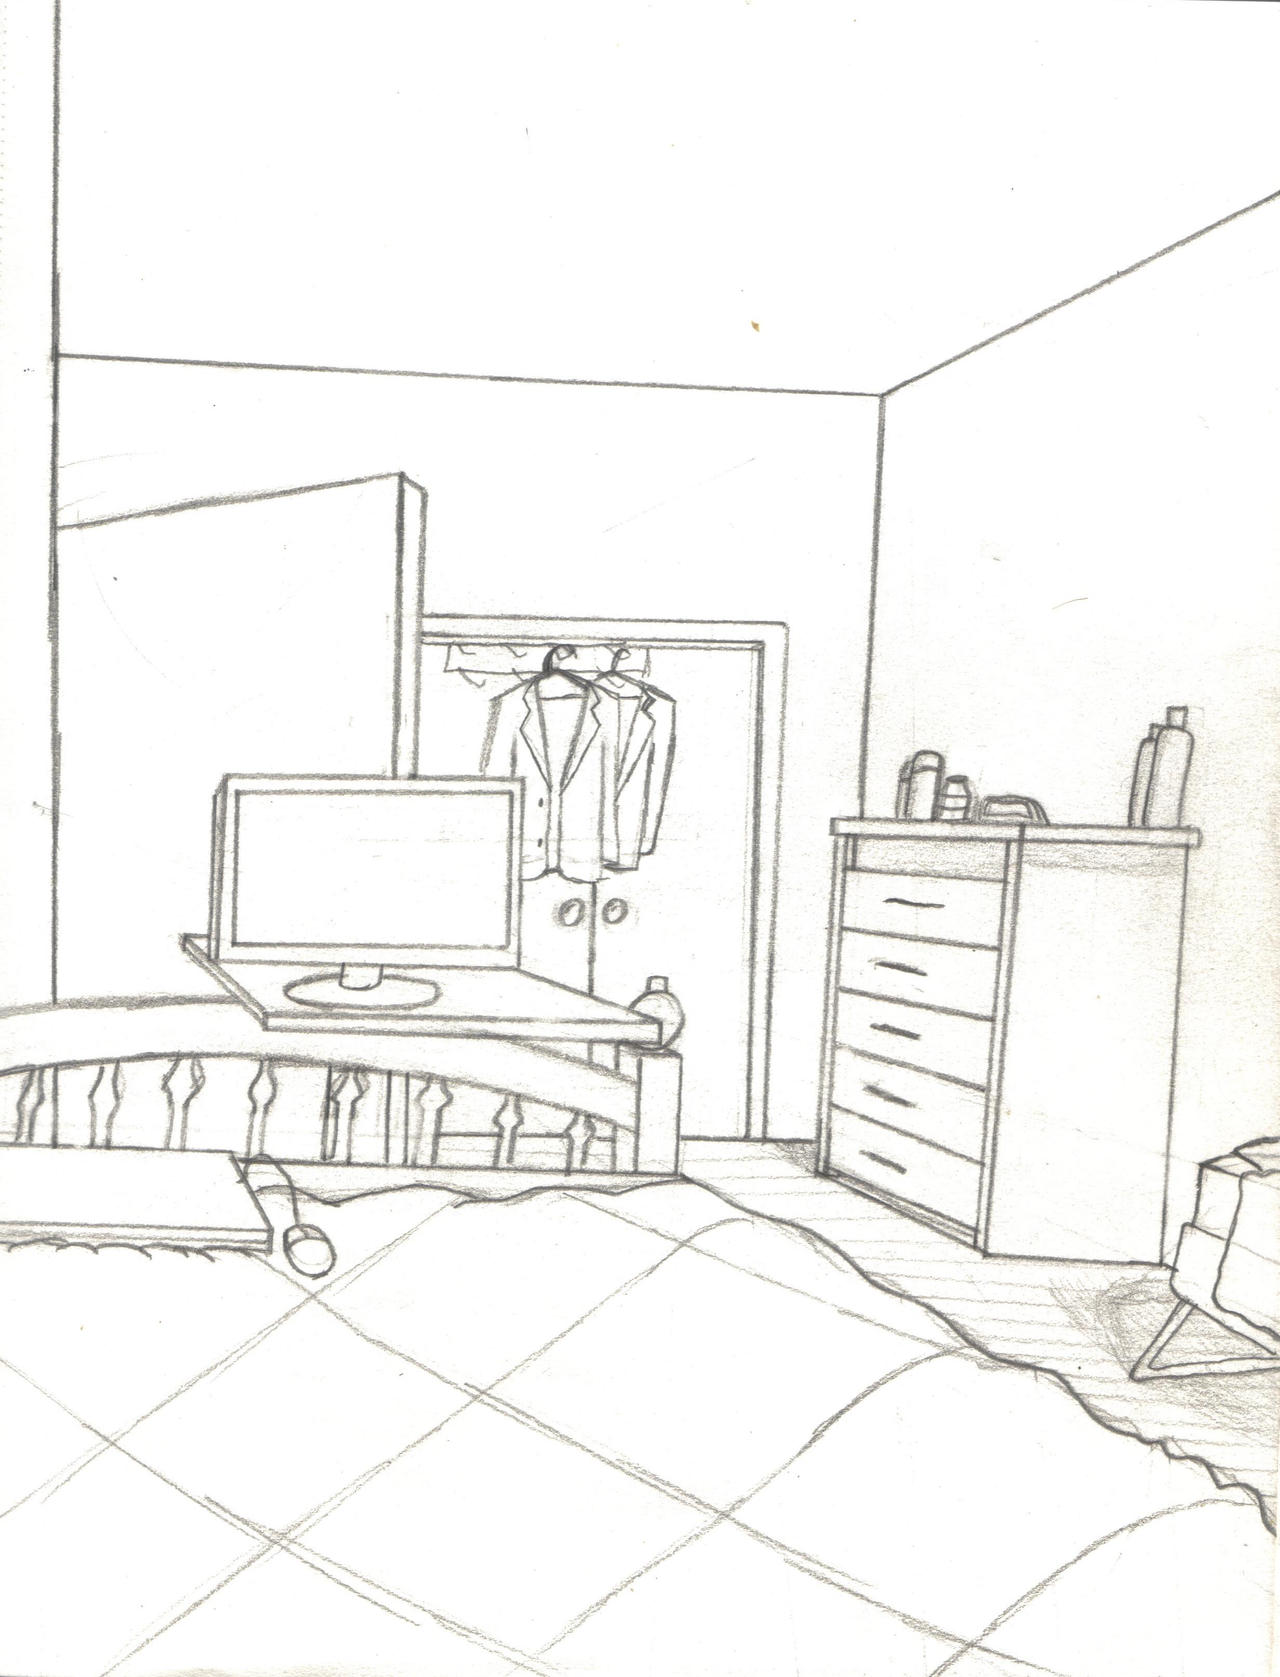 Bedroom Drawing: My Bedroom By Nosh59 On DeviantArt